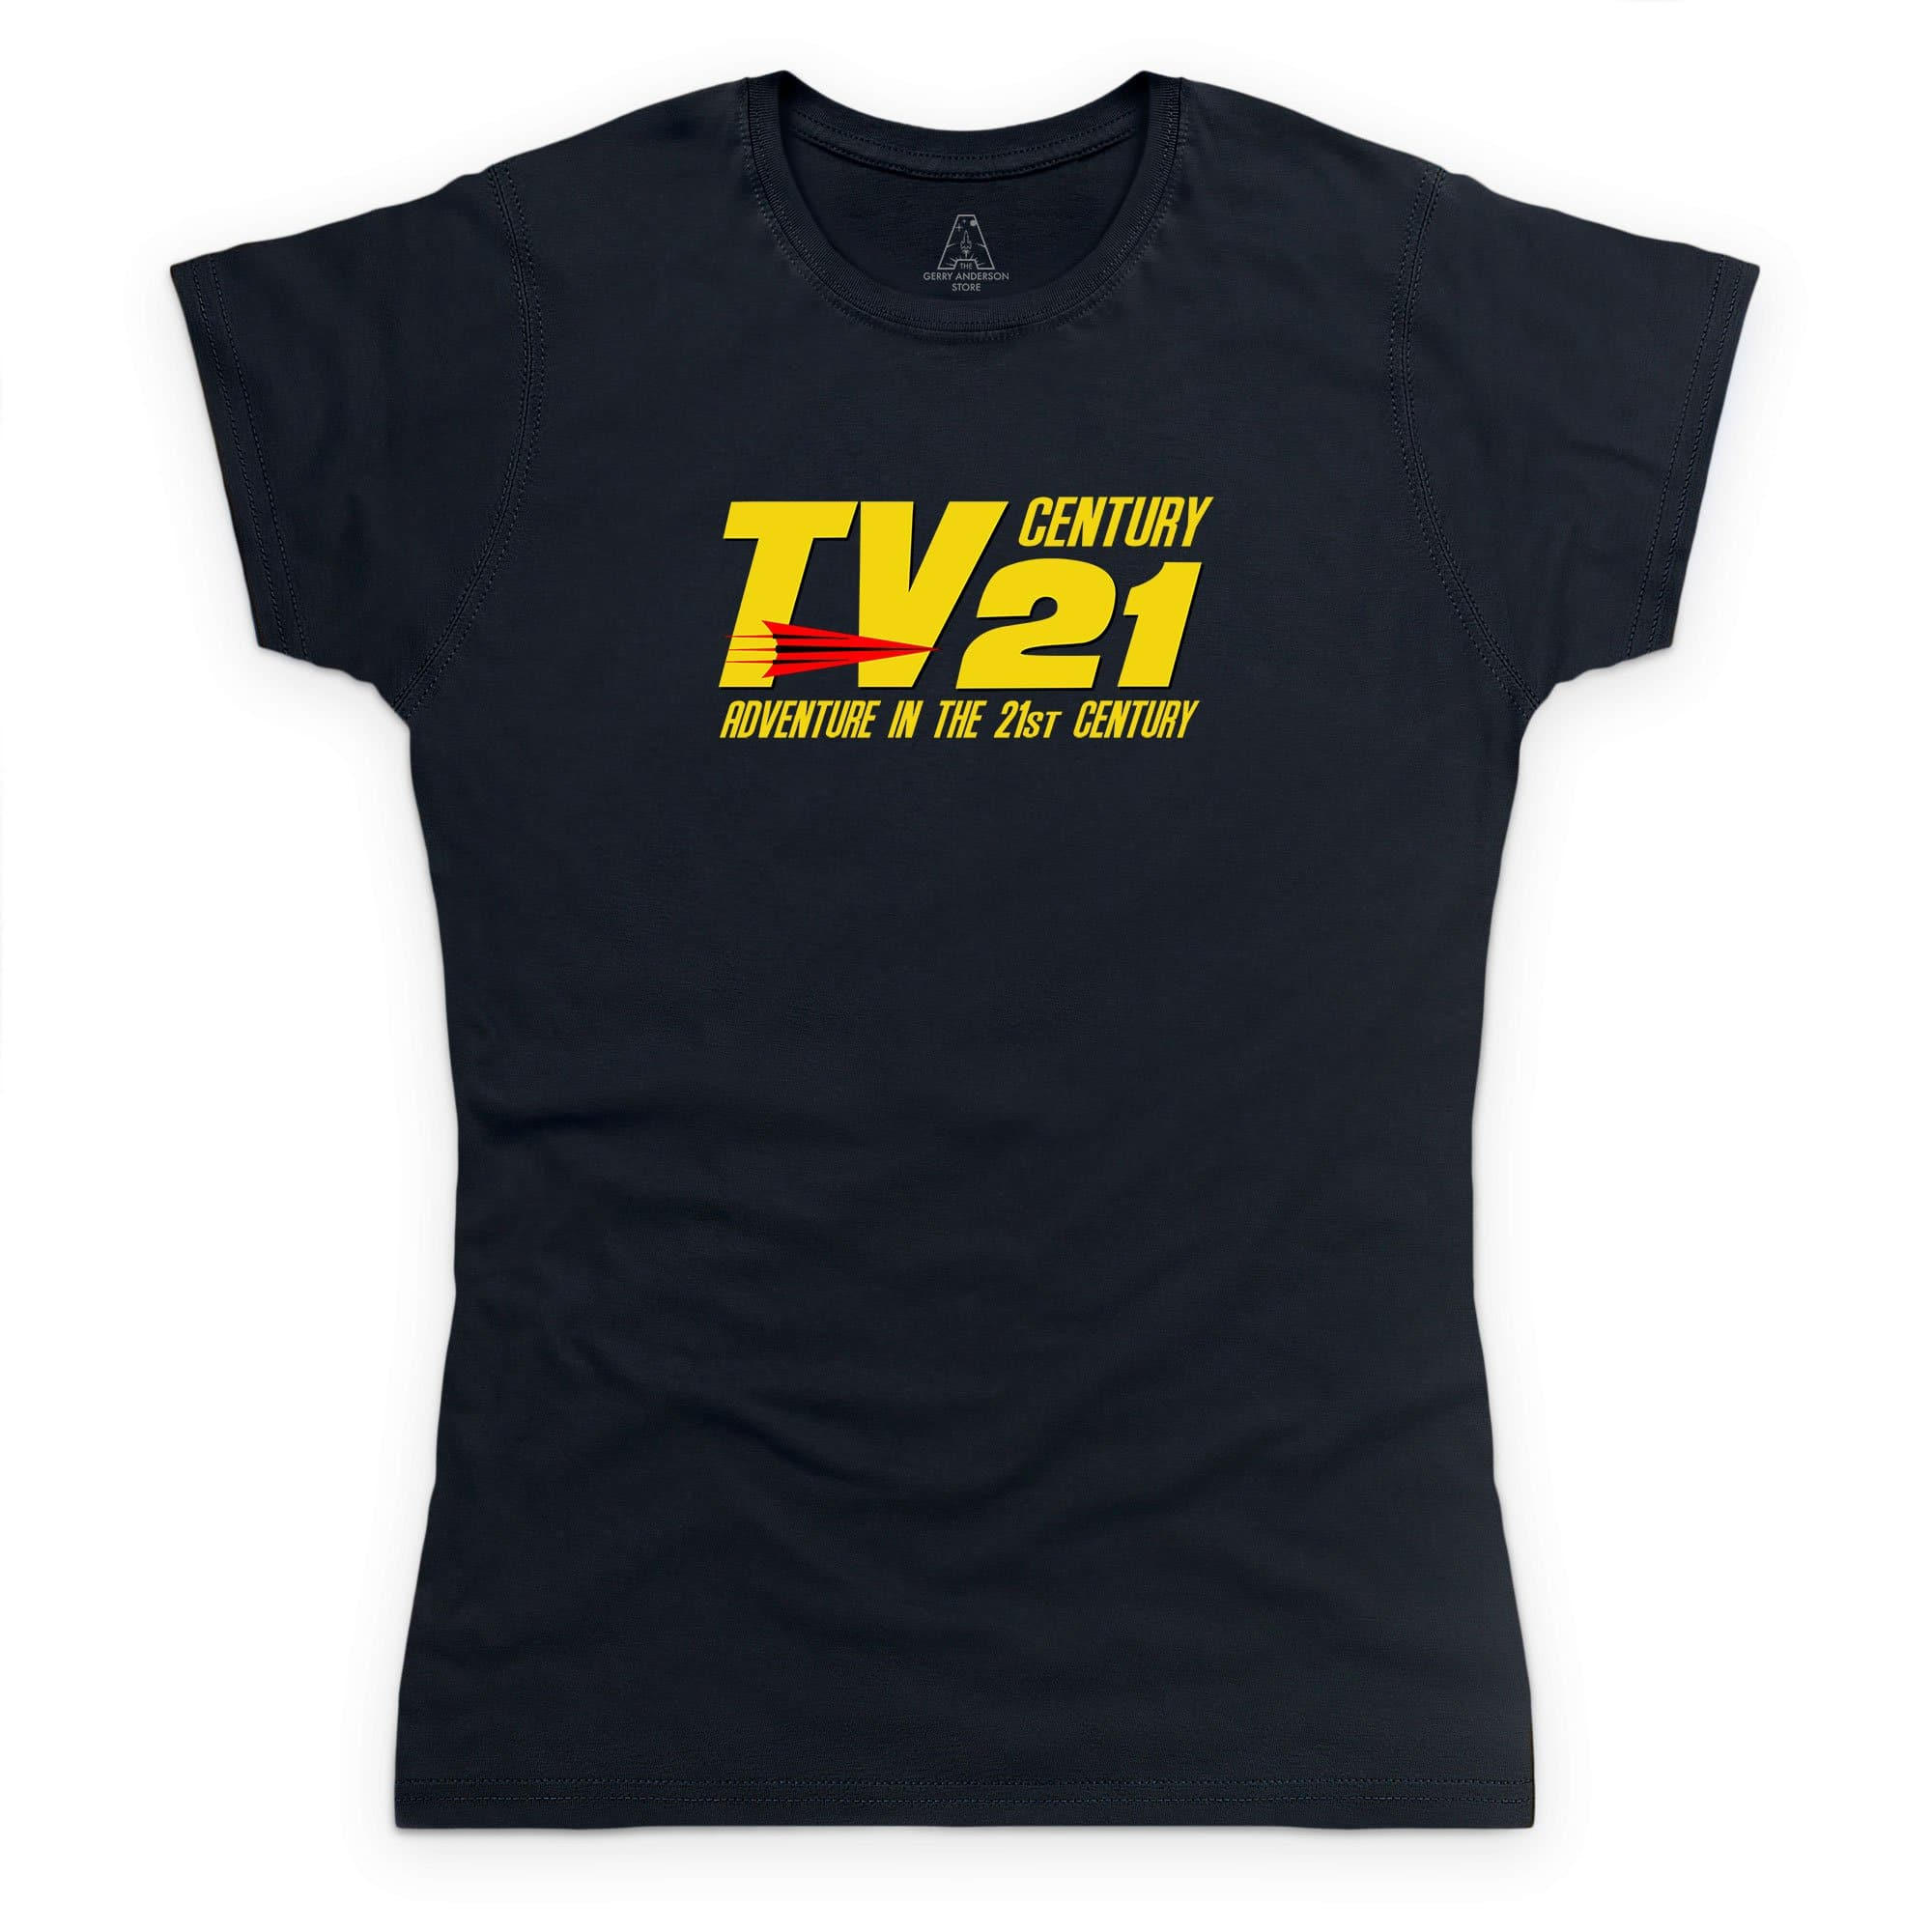 TB 21 Women's T Shirt - The Gerry Anderson Store